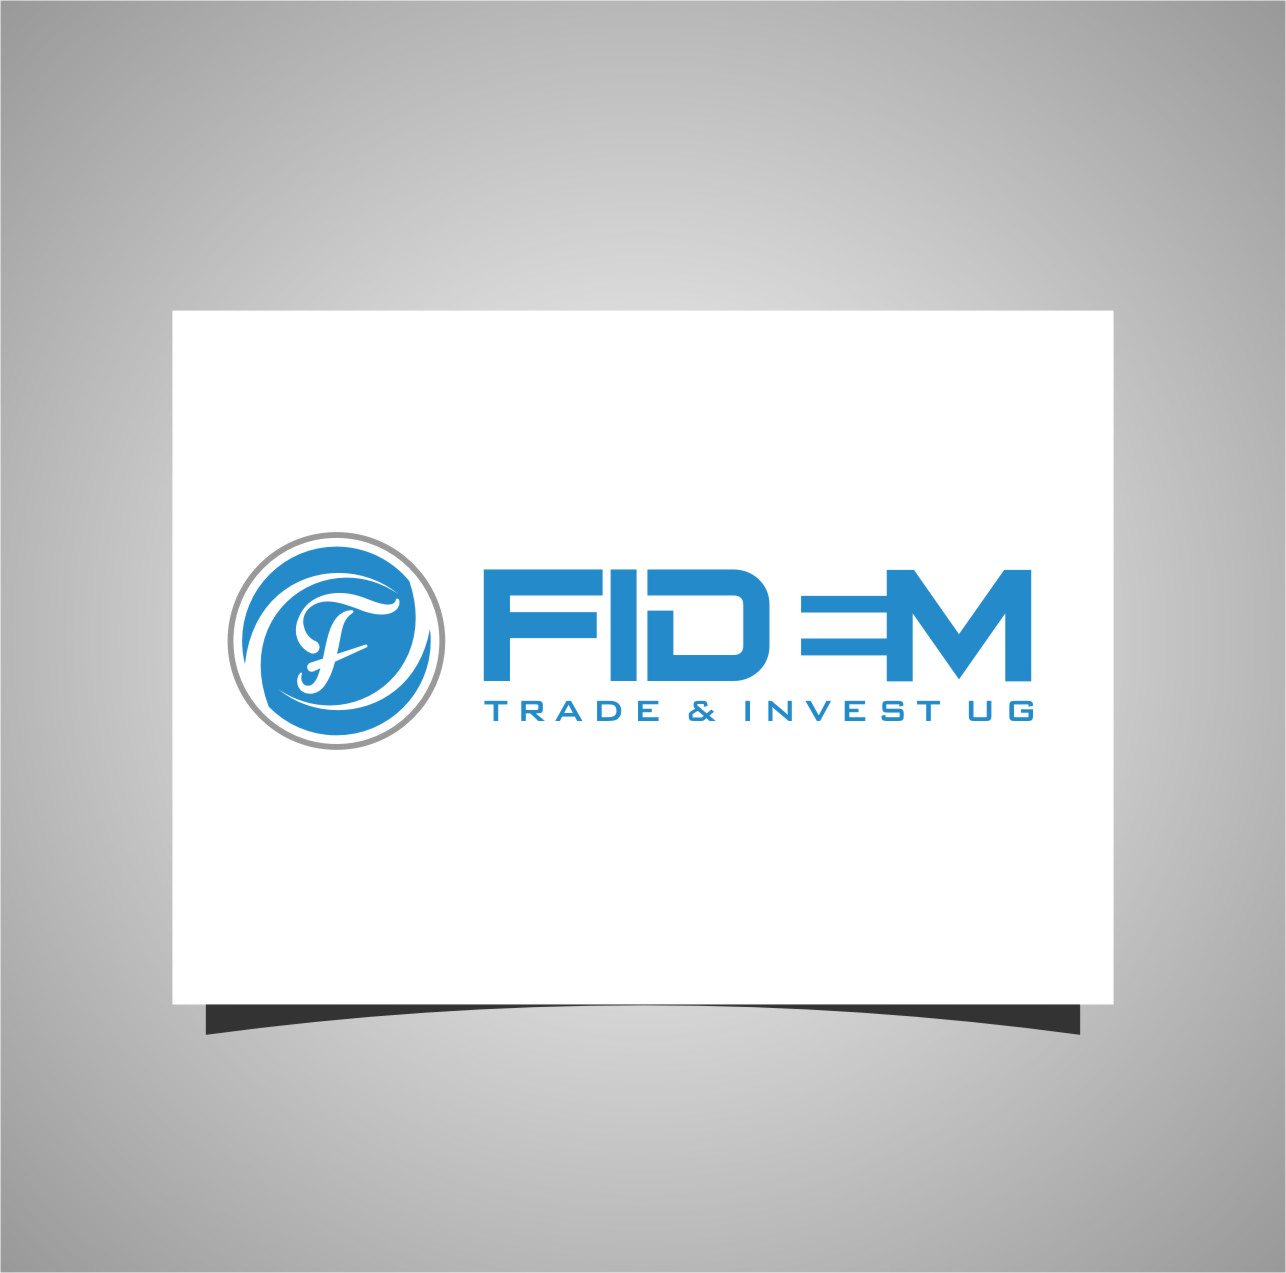 Logo Design by RasYa Muhammad Athaya - Entry No. 438 in the Logo Design Contest Professional Logo Design for FIDEM Trade & Invest UG.